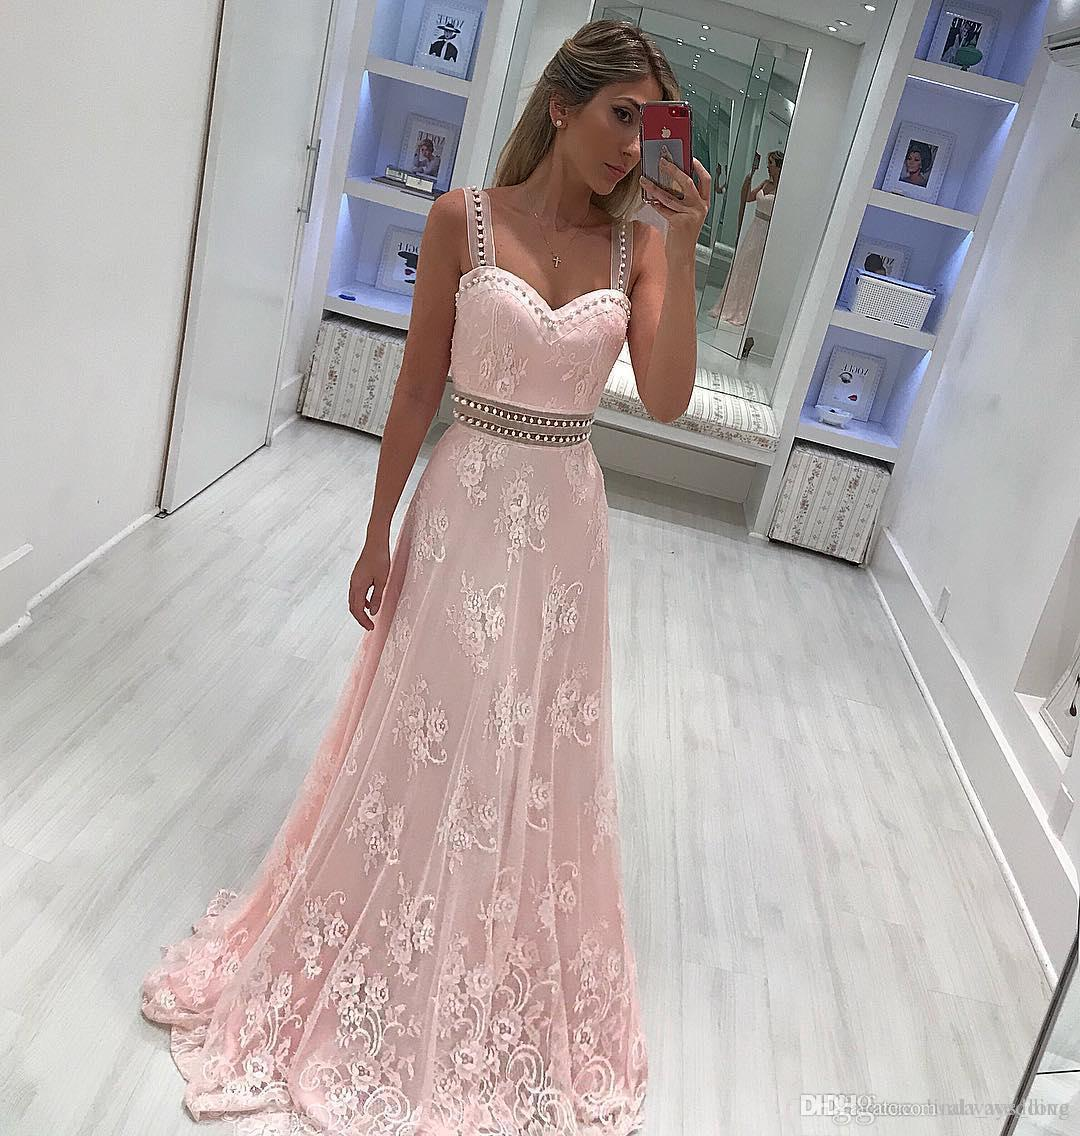 b5bdb490a05 2018 Light Pink Prom Dress Spaghetti Straps Lace Long Formal Pageant  Holidays Wear Graduation Evening Party Gown Custom Made Plus Size Black Prom  Dress Camo ...